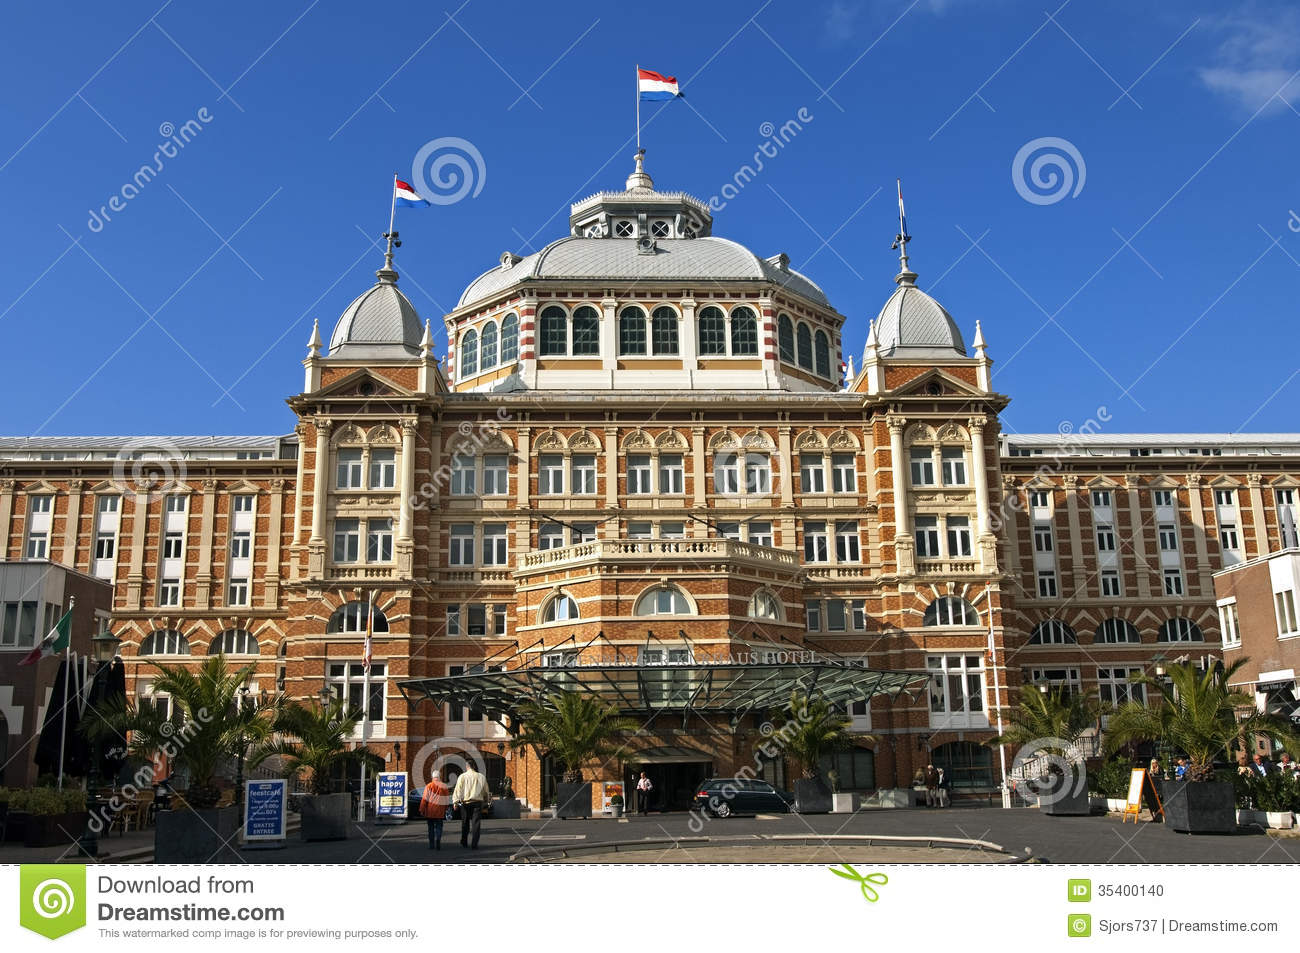 Famous German Architects Steigenberger Kurhaus Hotel In The Hague For Sale